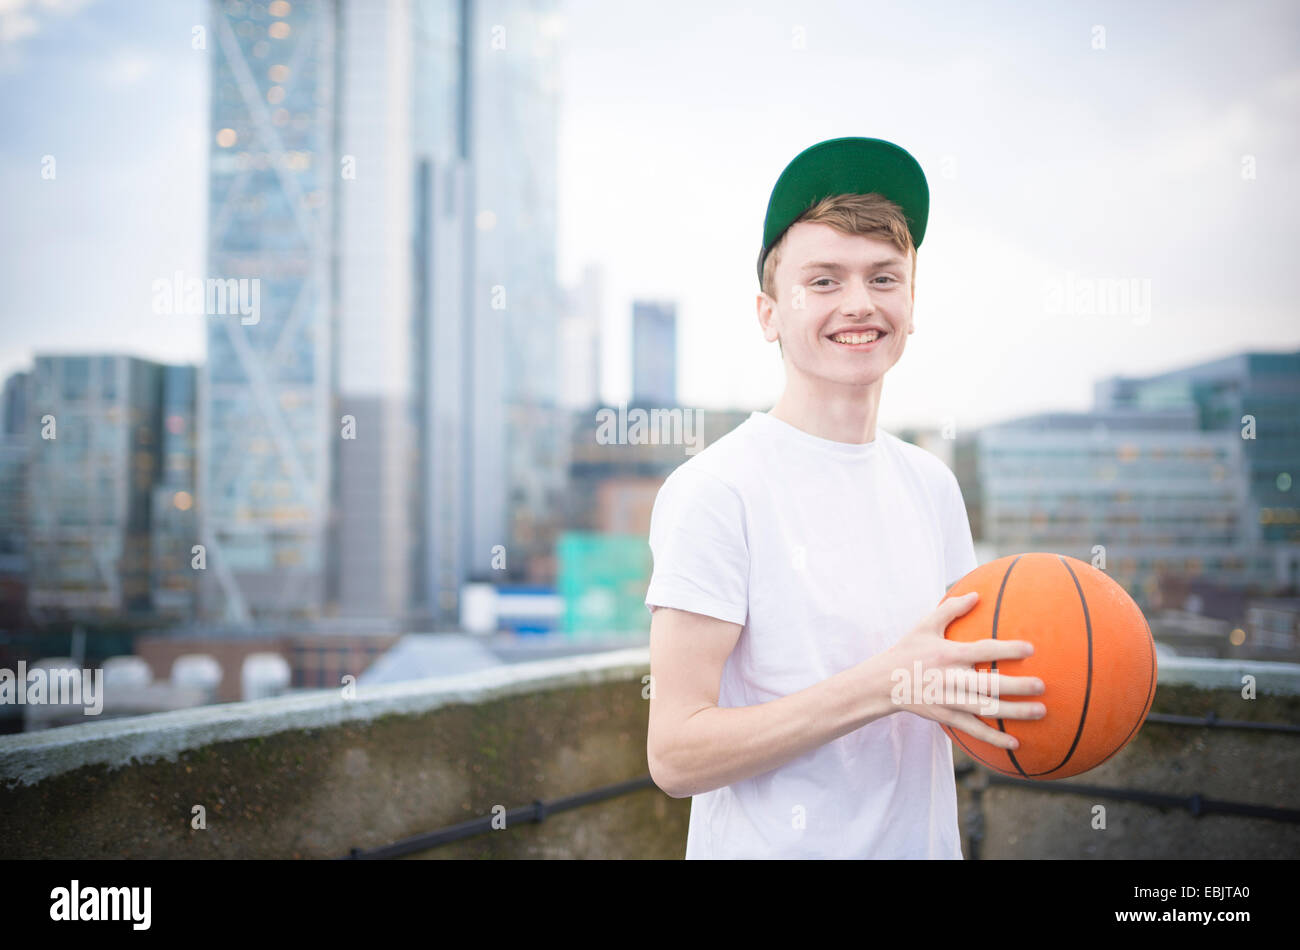 Teenage boy holding basketball Photo Stock